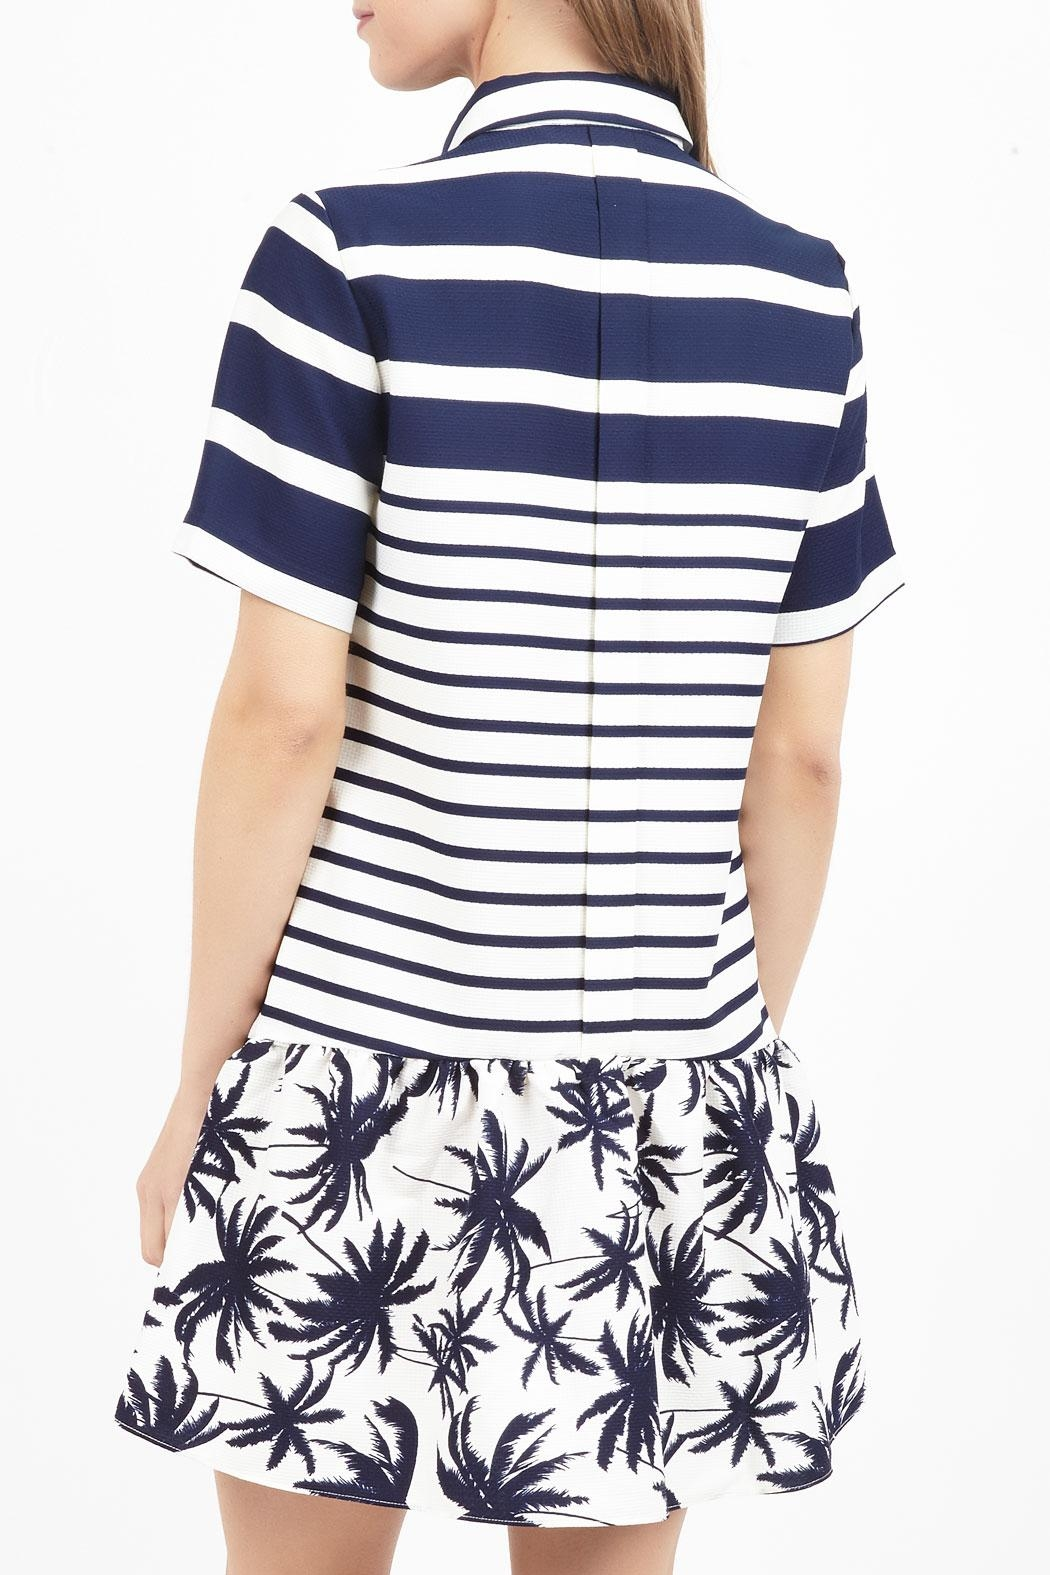 Zoa Collared Print Dress - Front Full Image